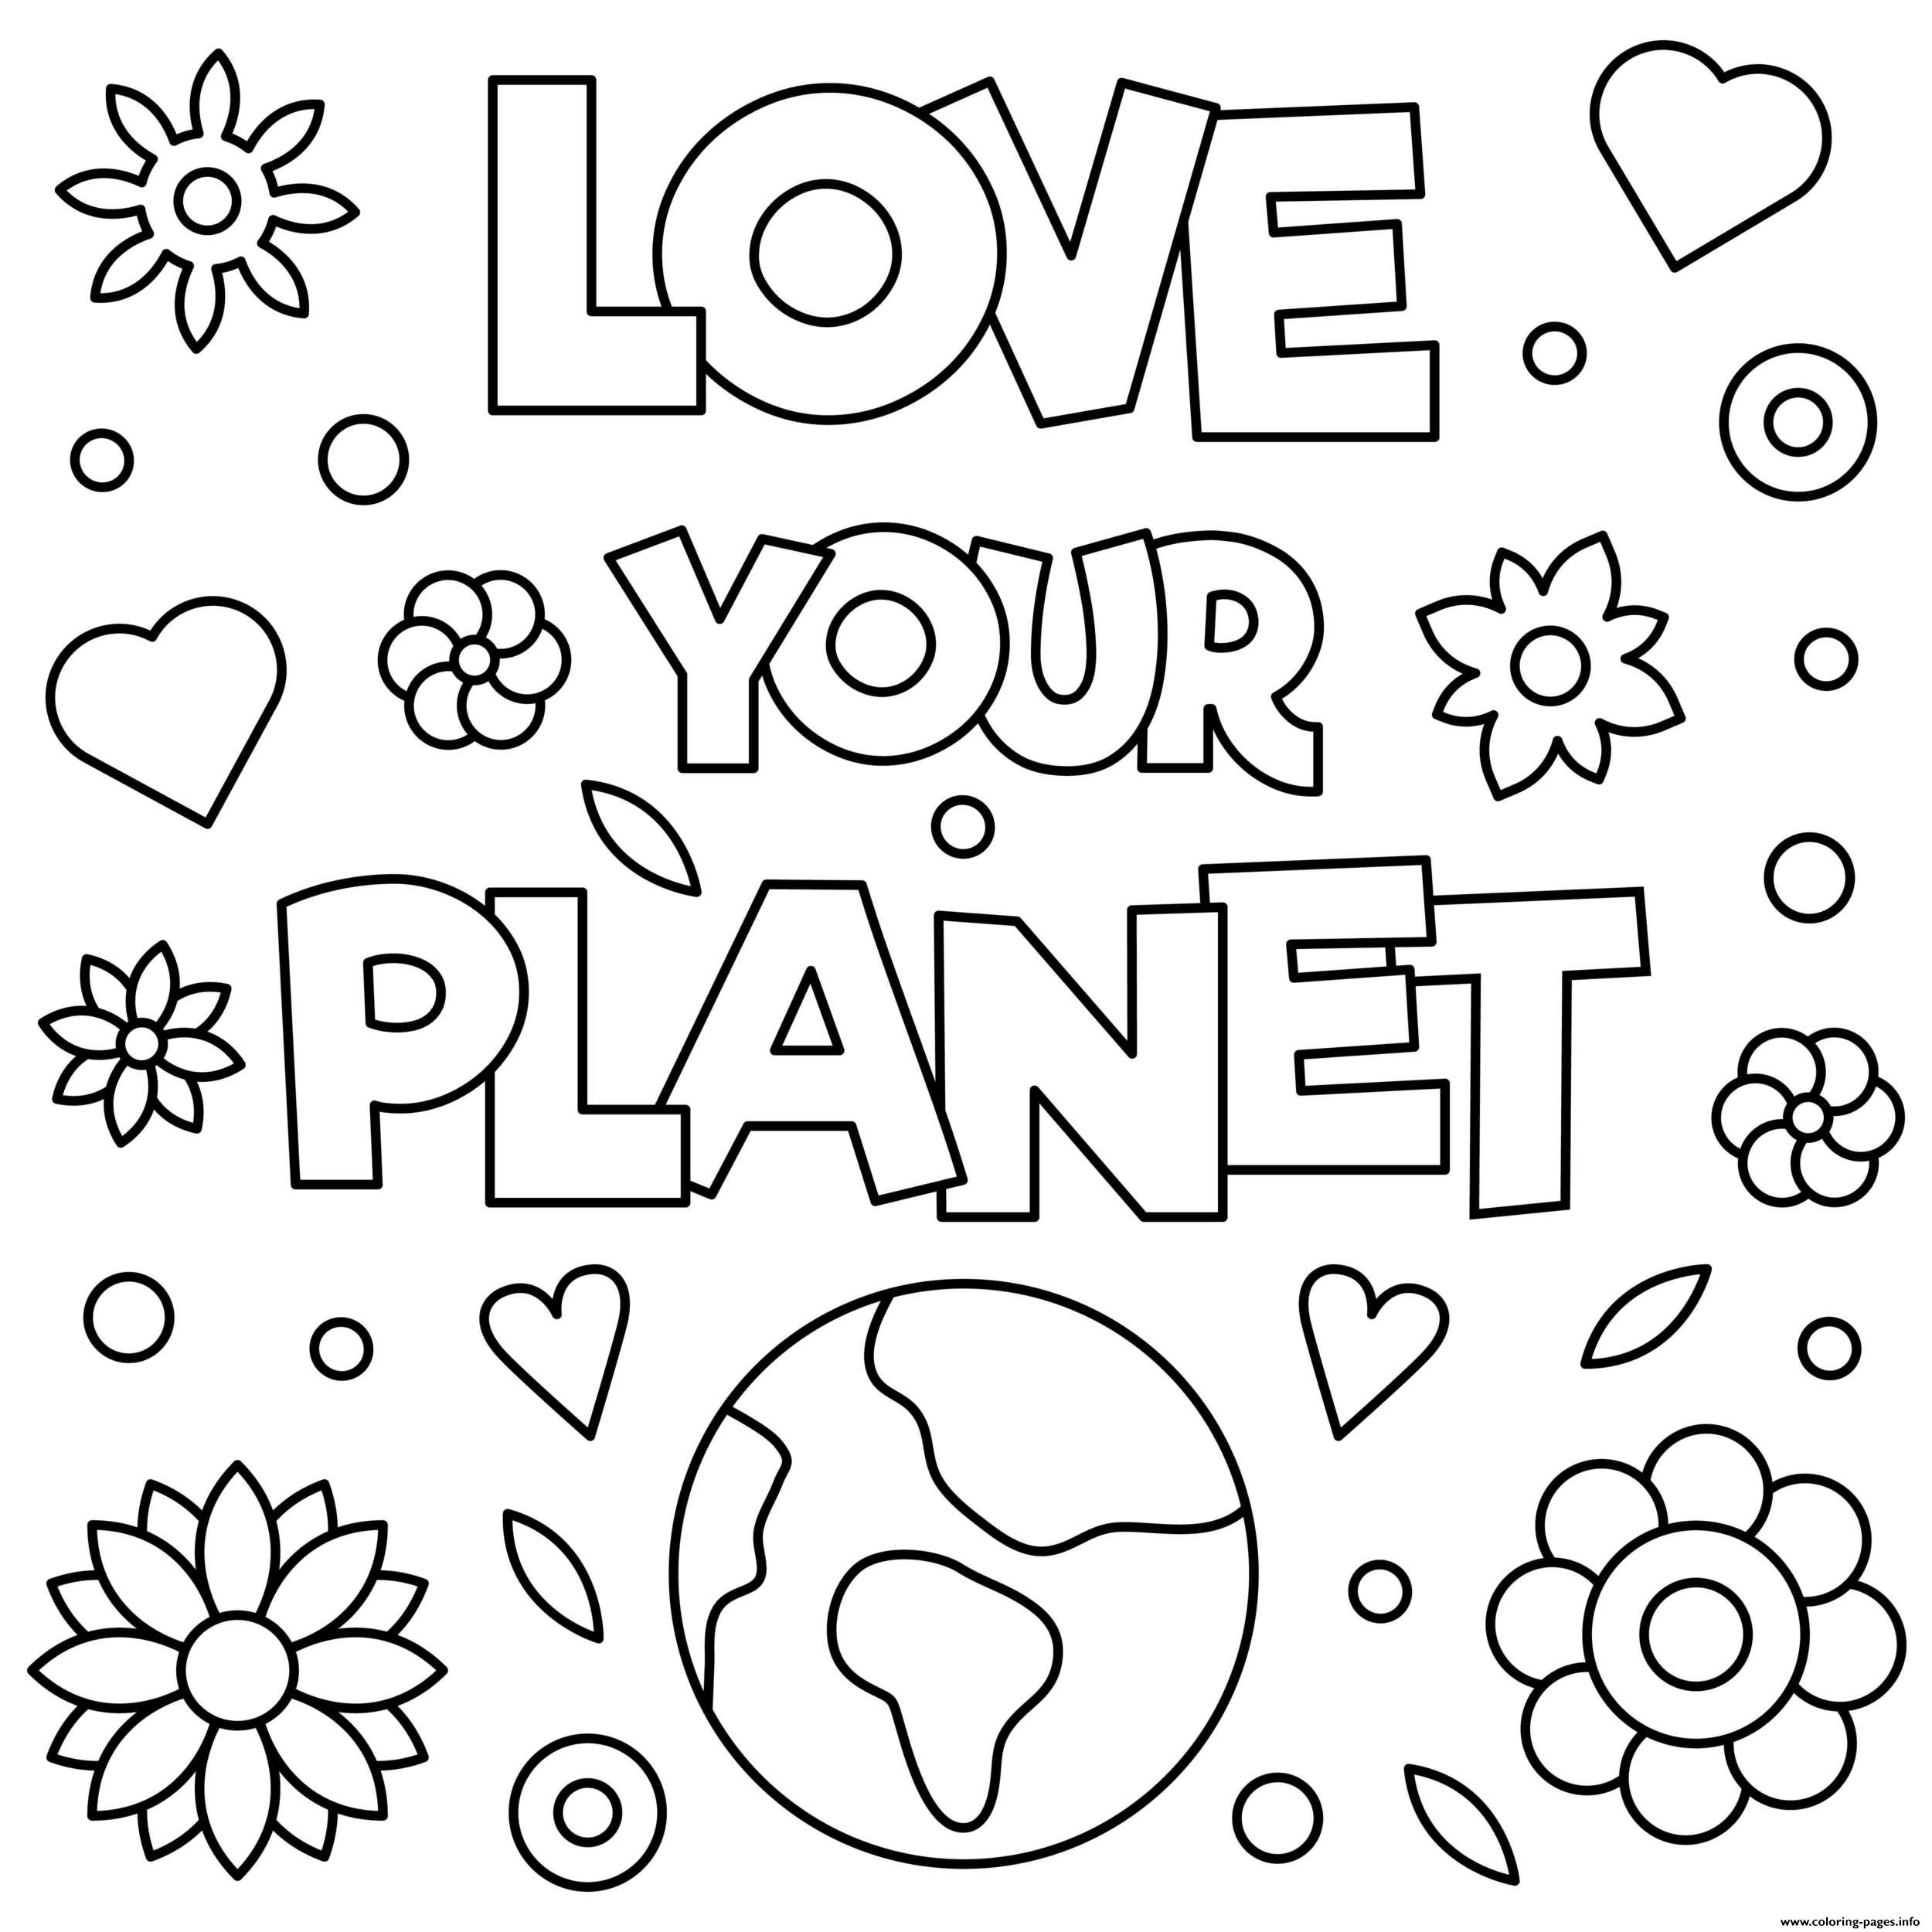 - Love Your Planet Earth Day 22 April Coloring Pages Printable